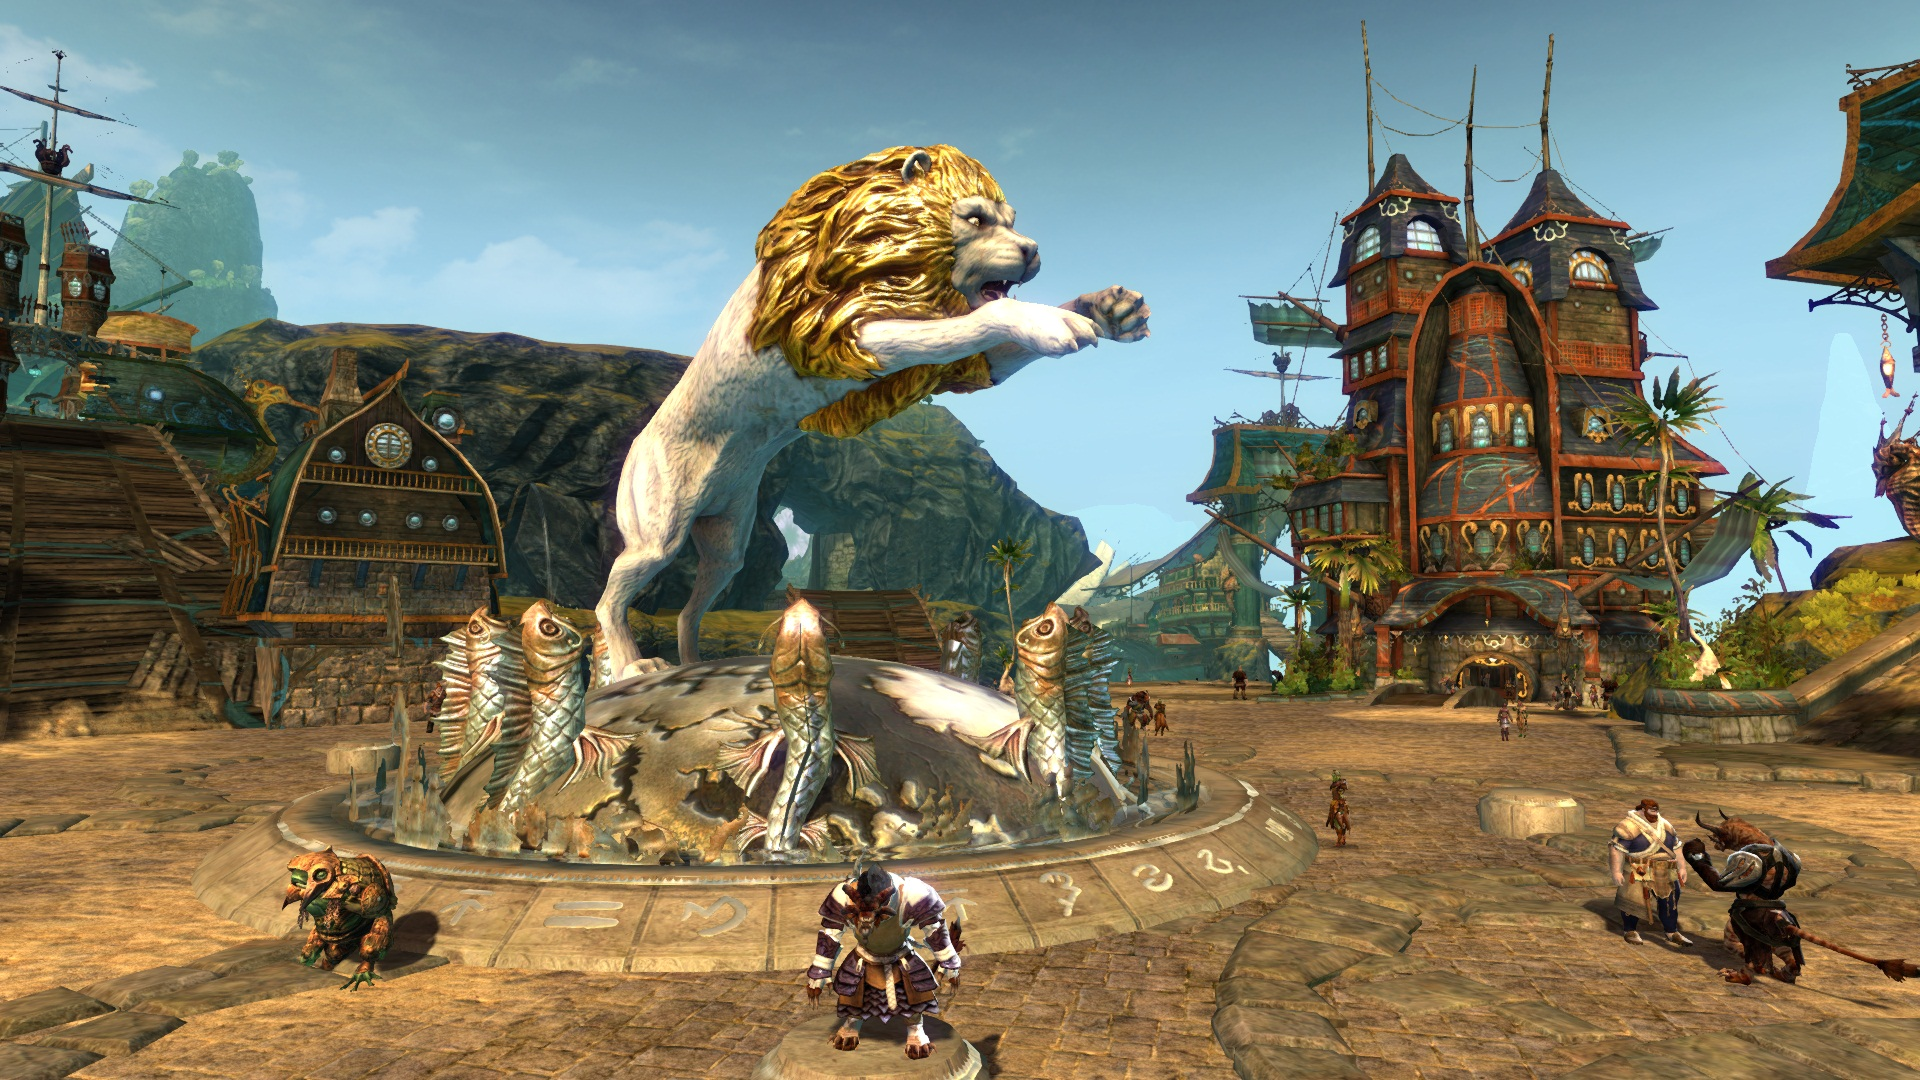 Download guild wars 2 client.